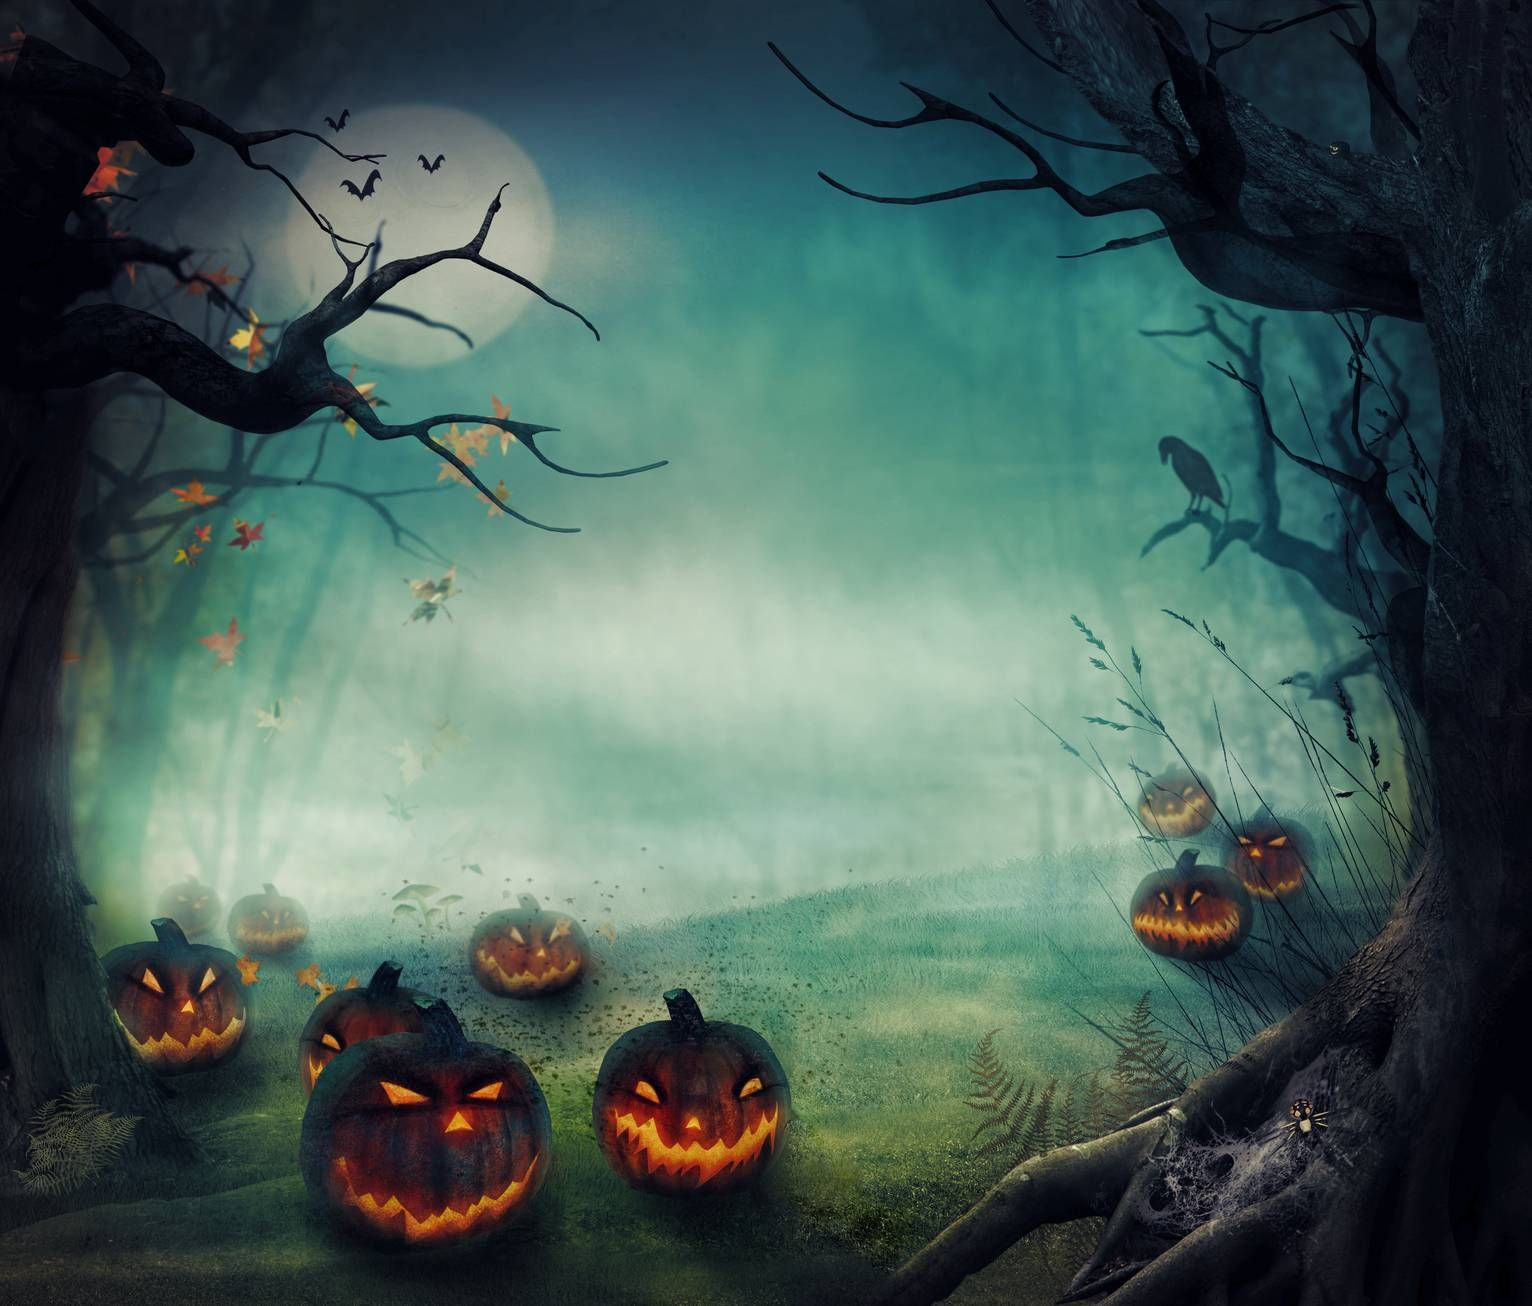 Scary Halloween Horror Halloween Backgrounds Wallpapers